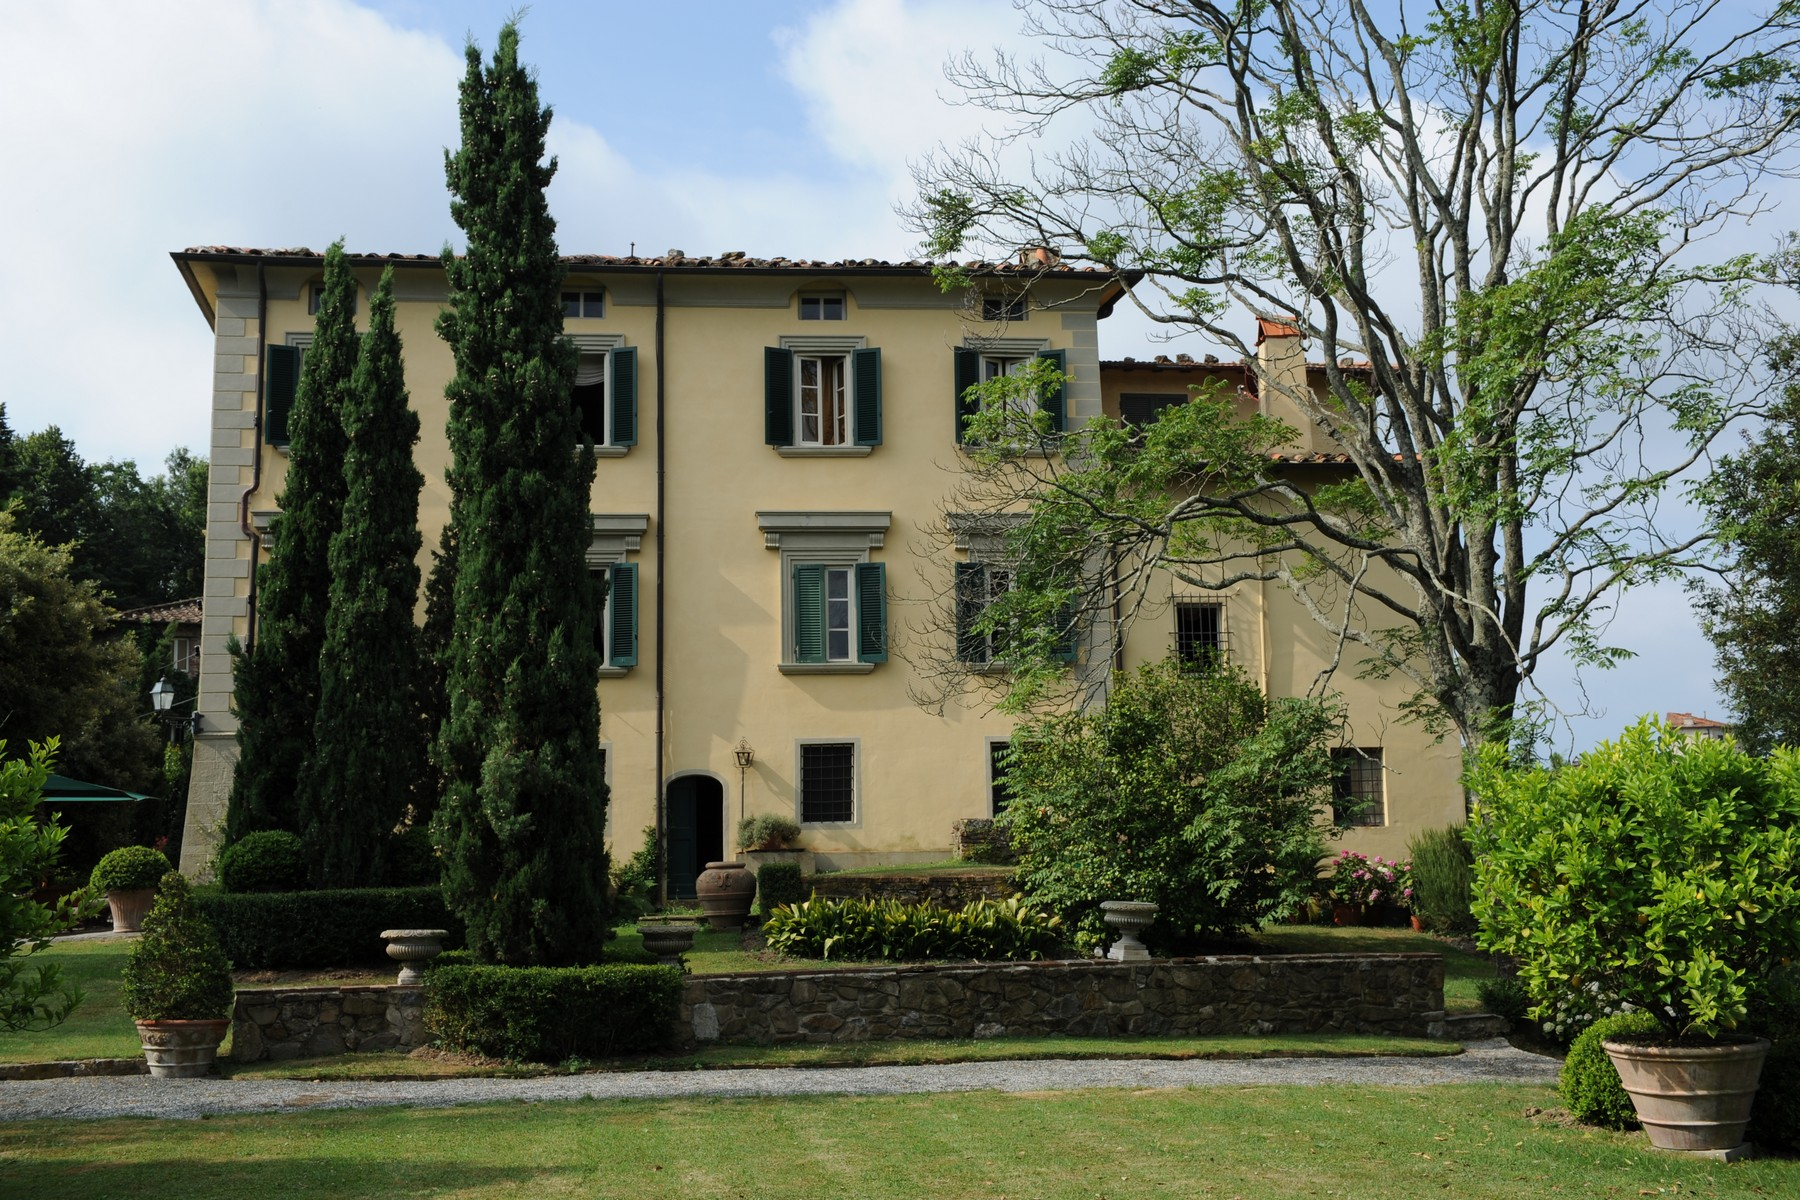 Single Family Home for Sale at Beautiful and unique 1590 century villa on the hills of Camaiore Camaiore, Lucca Italy